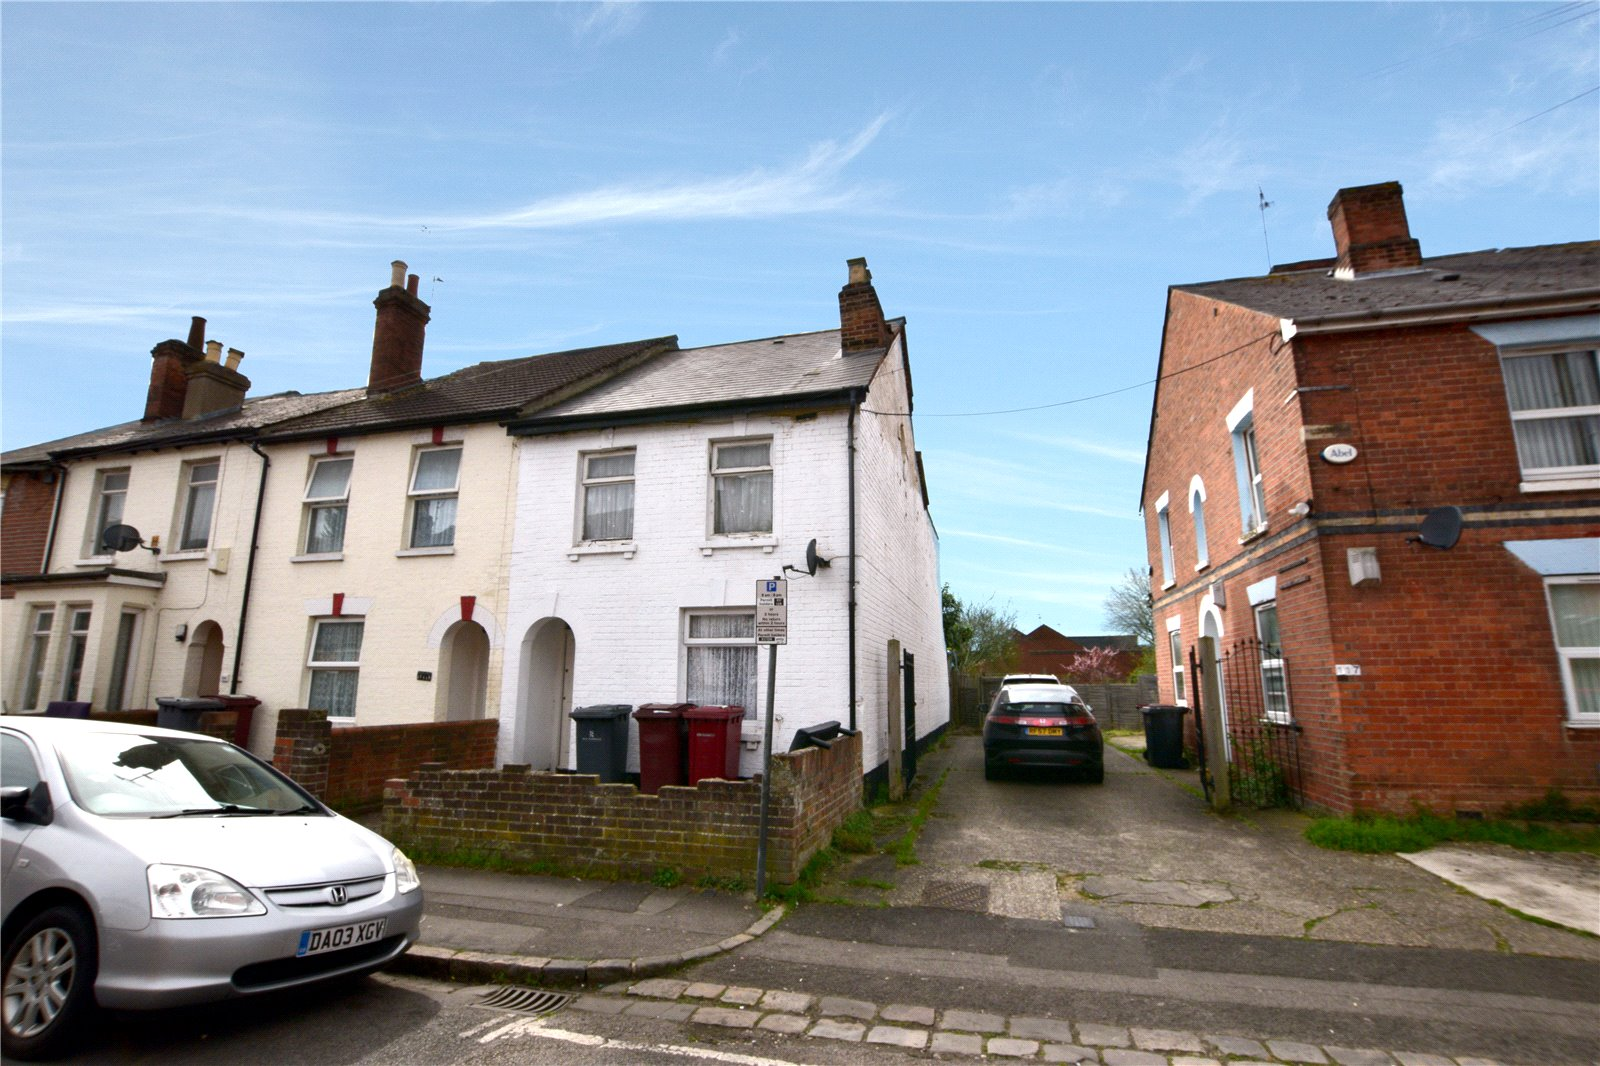 3 Bedrooms End Of Terrace House for sale in Cumberland Road, Reading, Berkshire, RG1